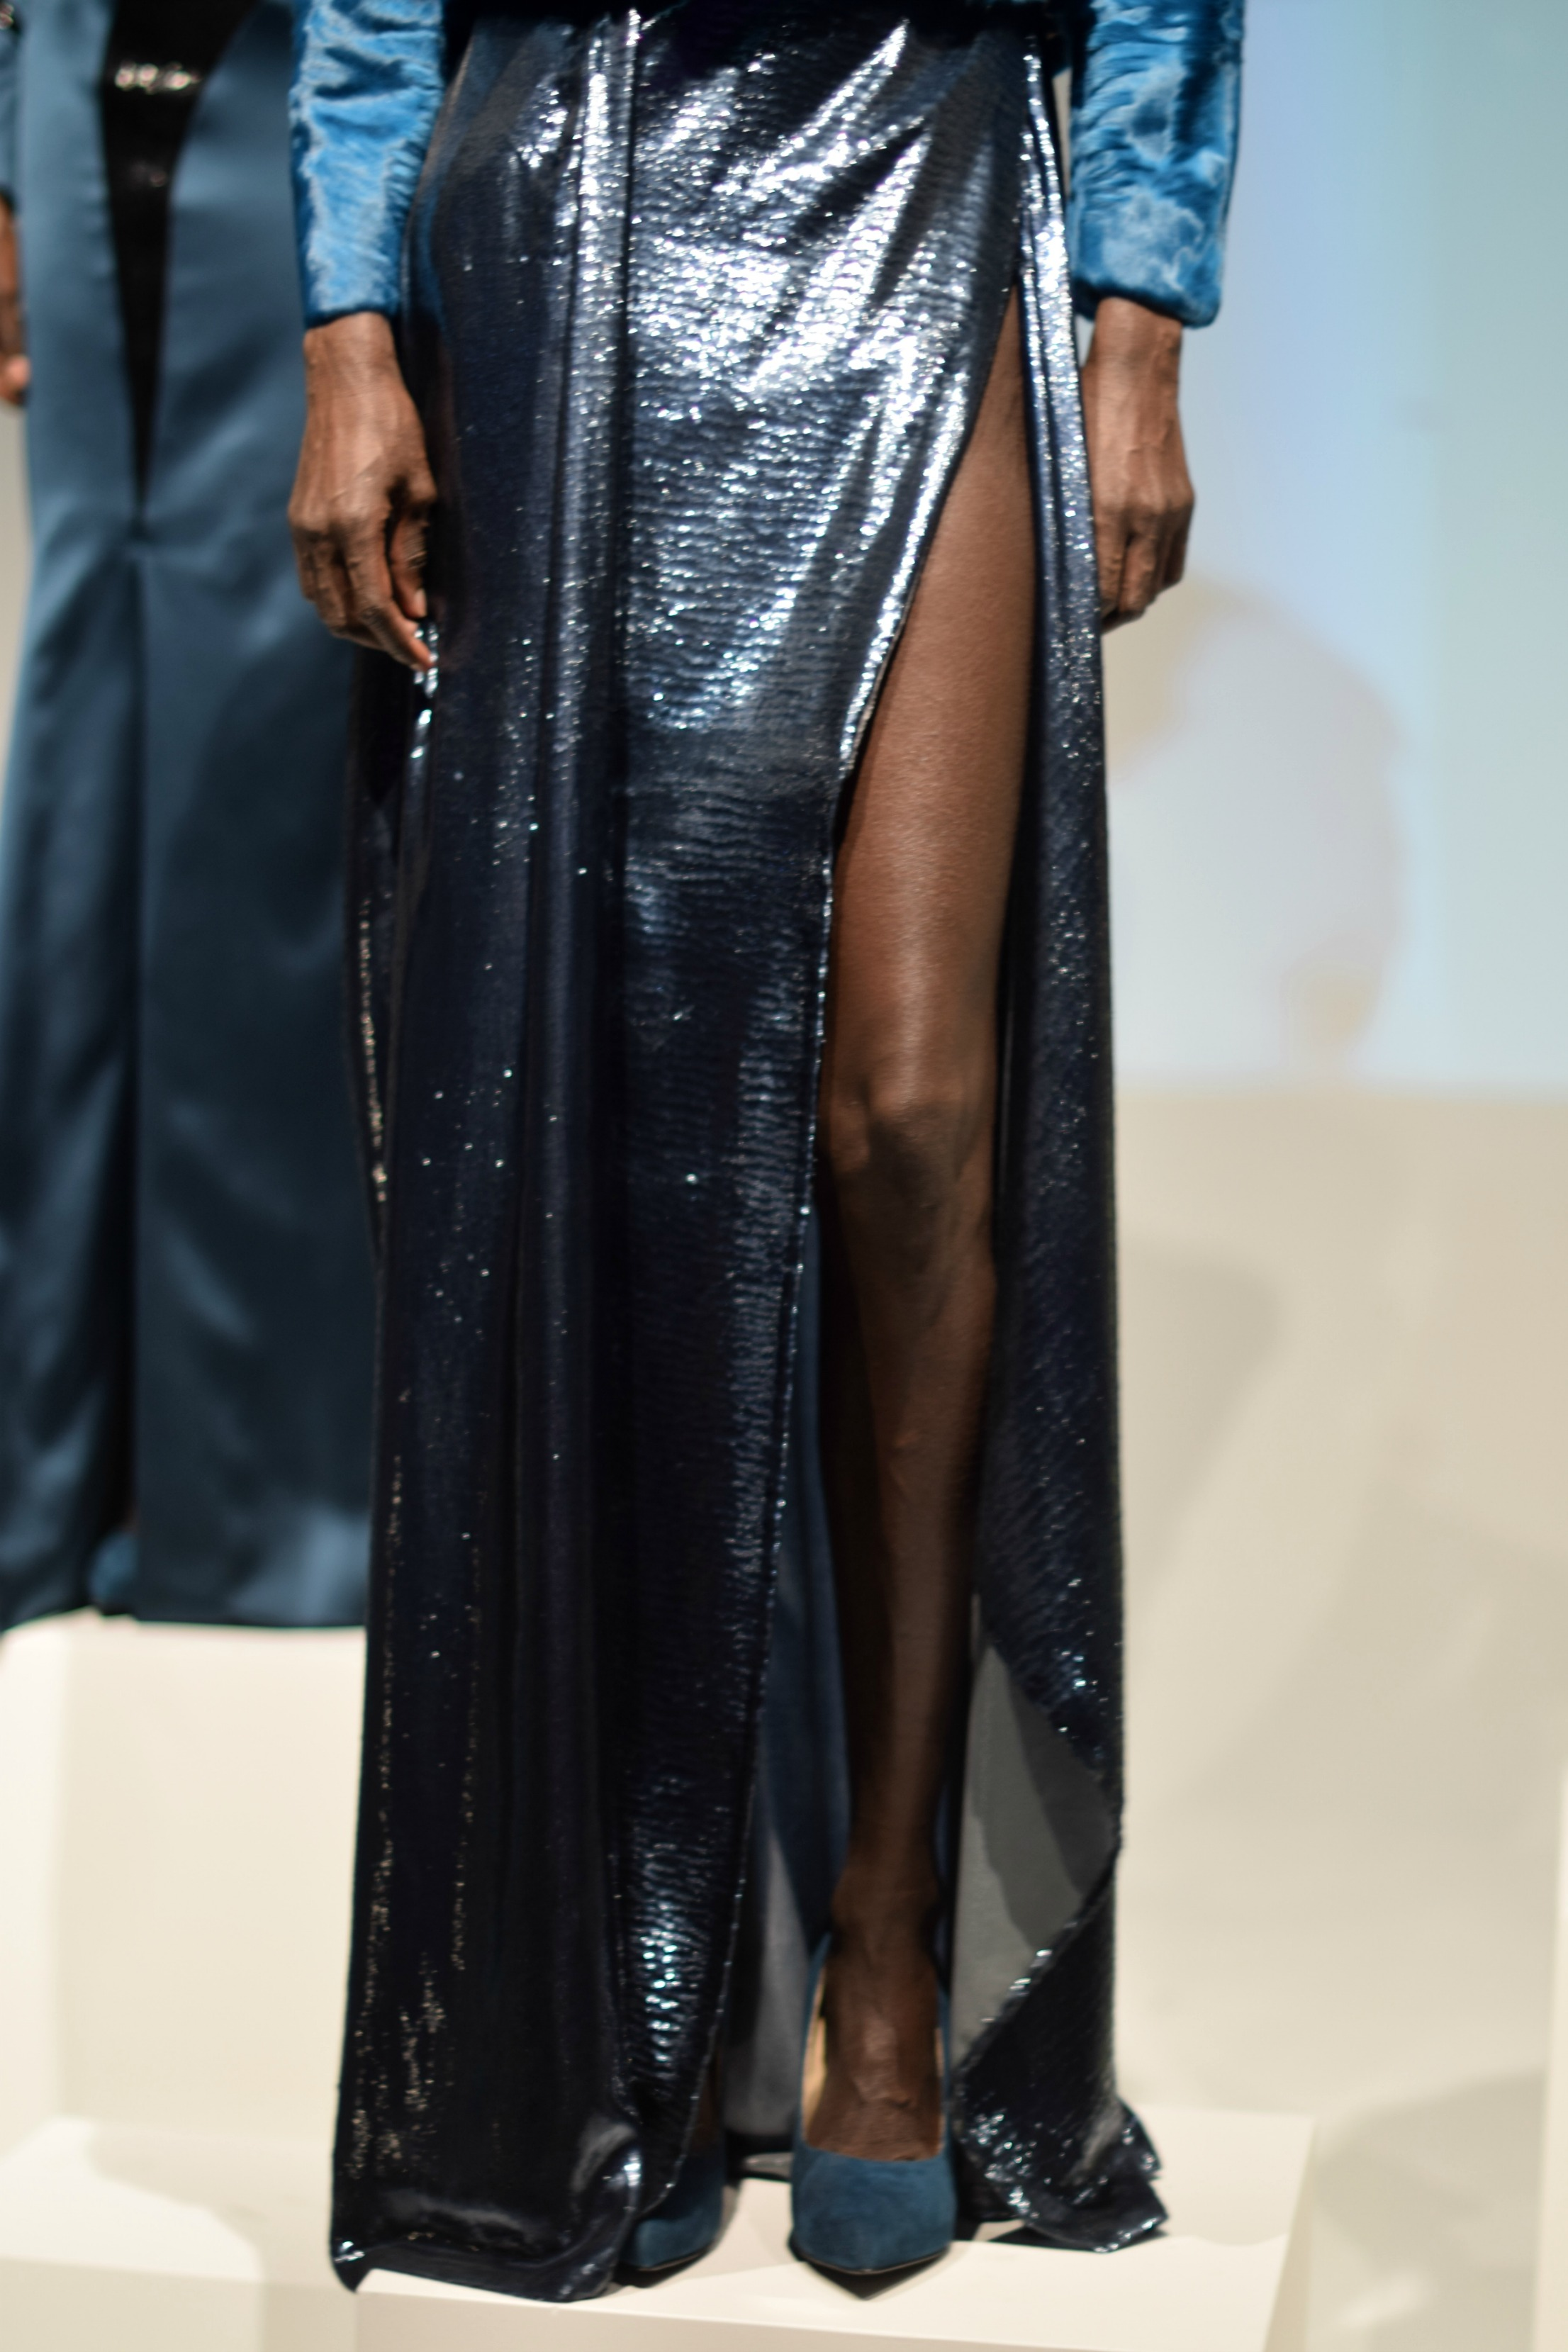 NYFW Rubin Singer Fashion Presentation Fall_Winter 2016 Louboutins _ Love Fashion Blog Esther Santer NYC Street Style Runway Models Collection Press Coverage Photos Details Dress Gown Beautiful Gorgeous Stunning Pretty Shop New York City Celebrities 5.jpg